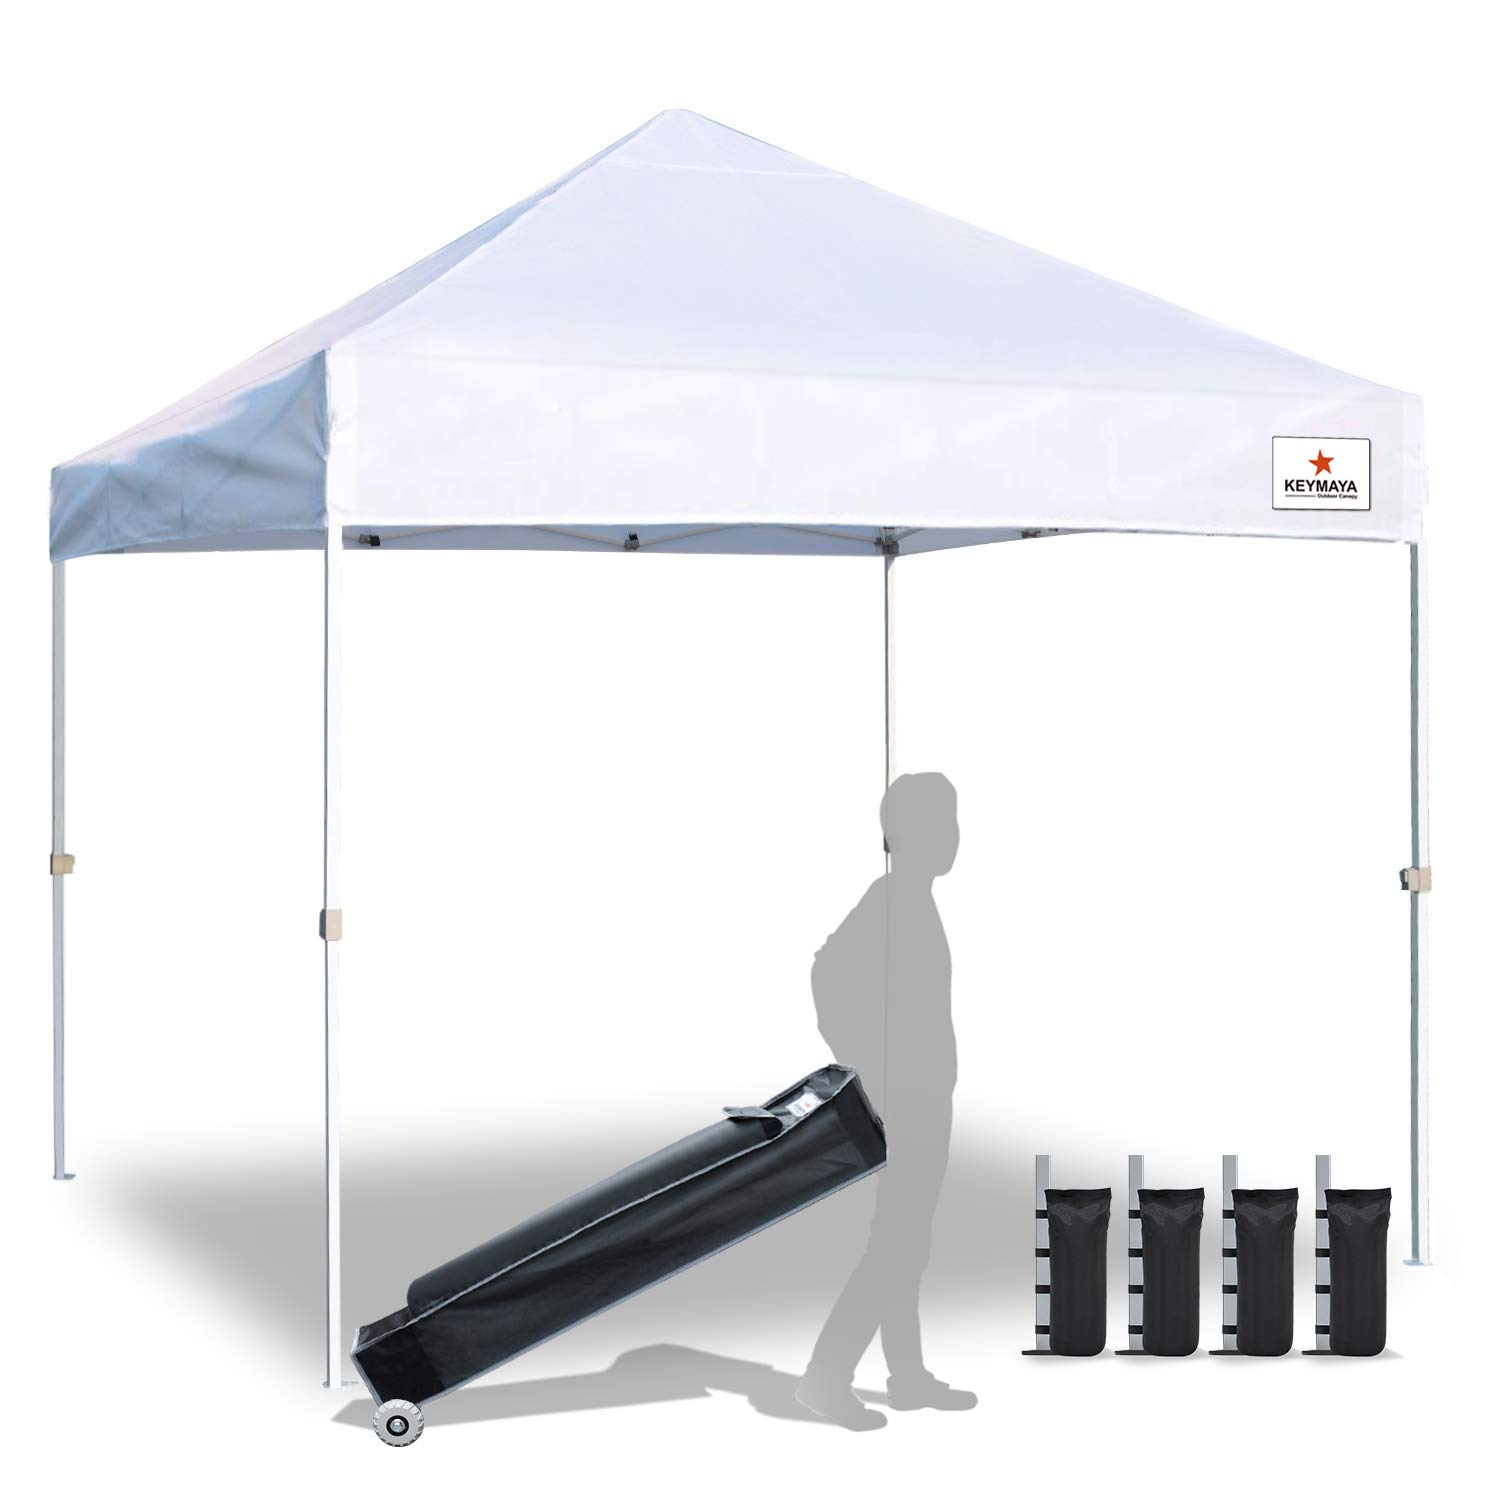 Keymaya 10x20 Ez Pop Up Canopy Tent Commercial Instant Shelter Canopies Bonus Heavy Duty Weight Bag 6-pc Pack White